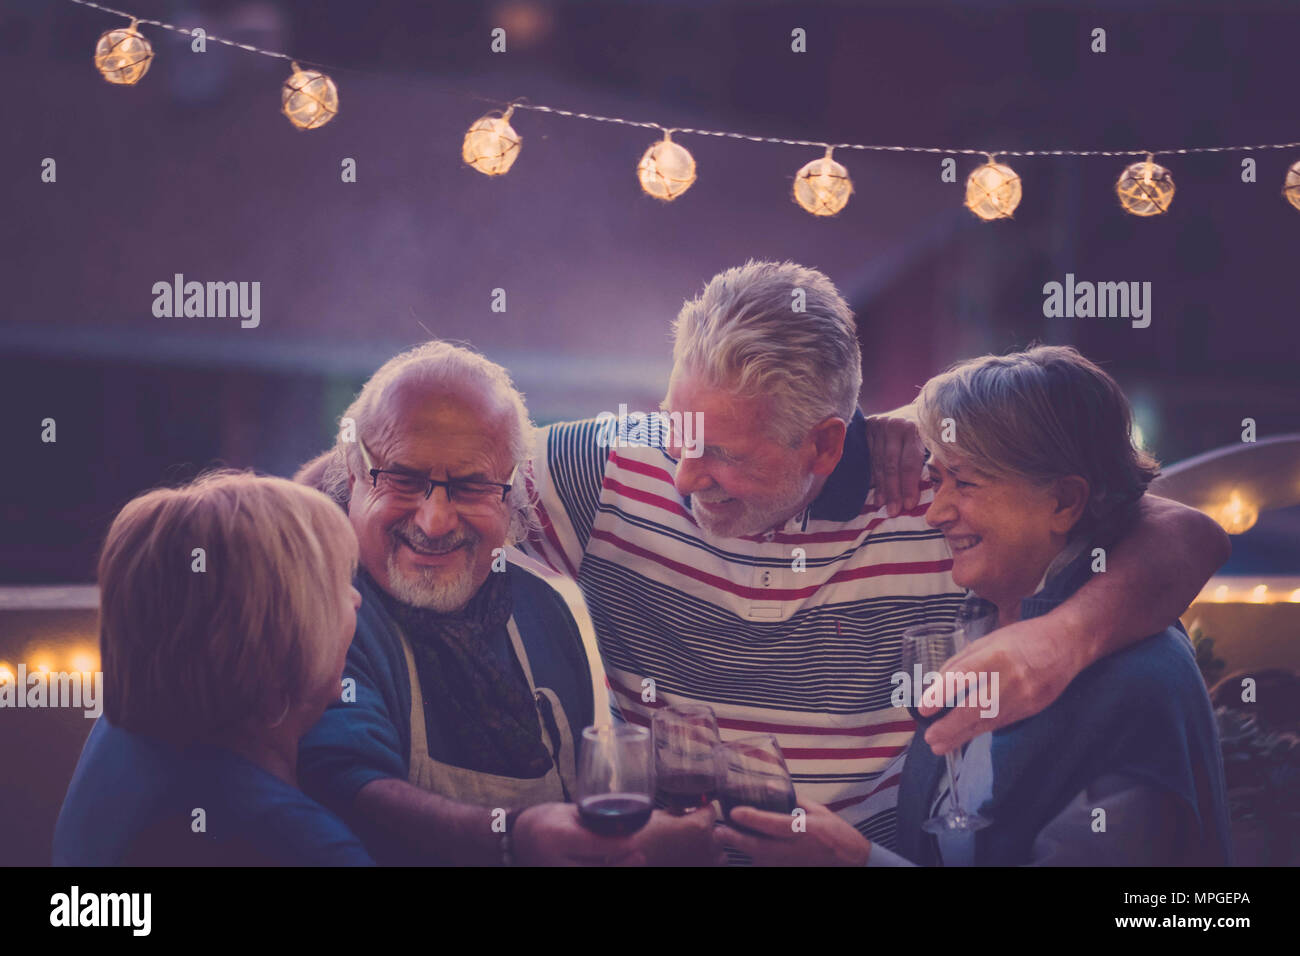 Focus on the man. group of senior adult aged doing party night on the rooftop at home. everybody hug together and smile and laugh for a nice activity  - Stock Image